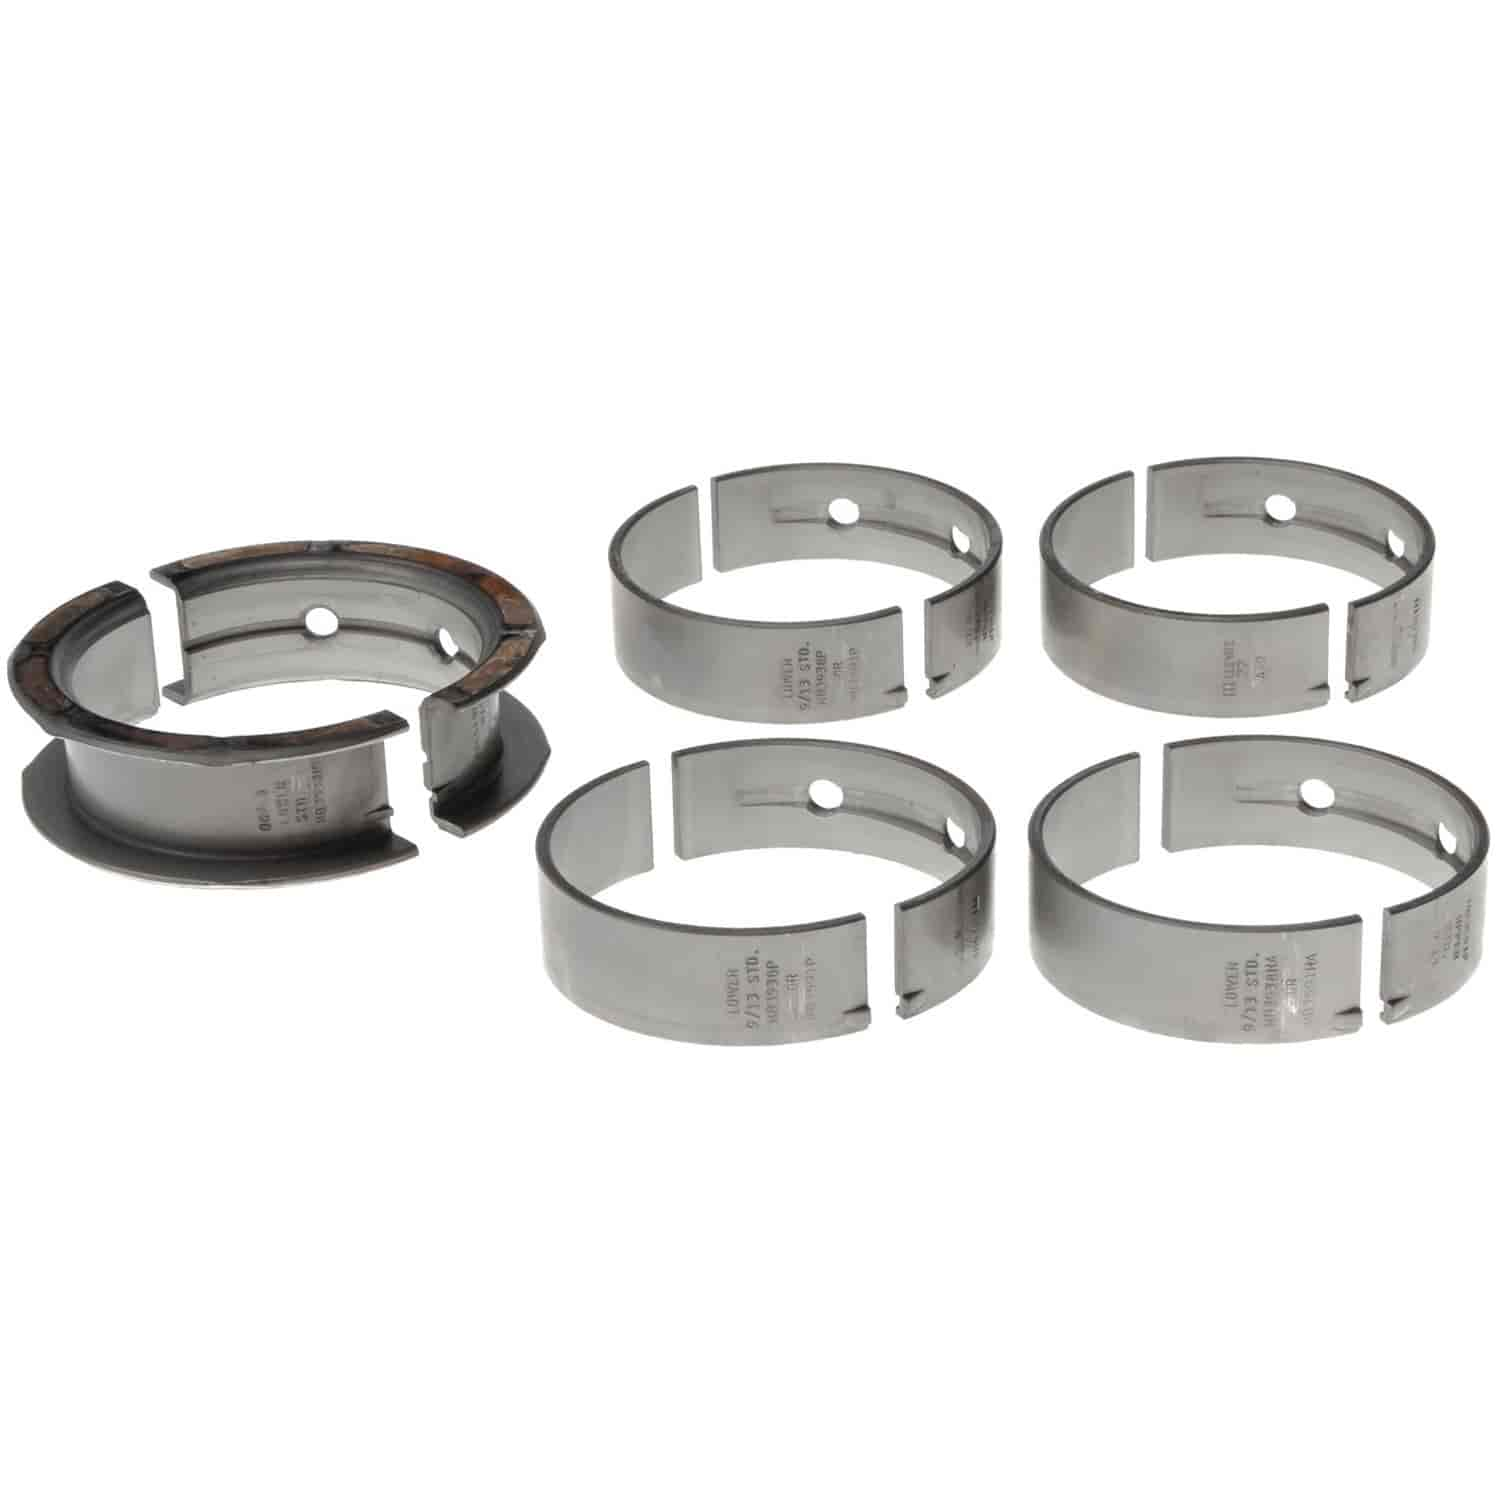 Clevite MS2199P - Clevite 77 GM High-Performance Bearings